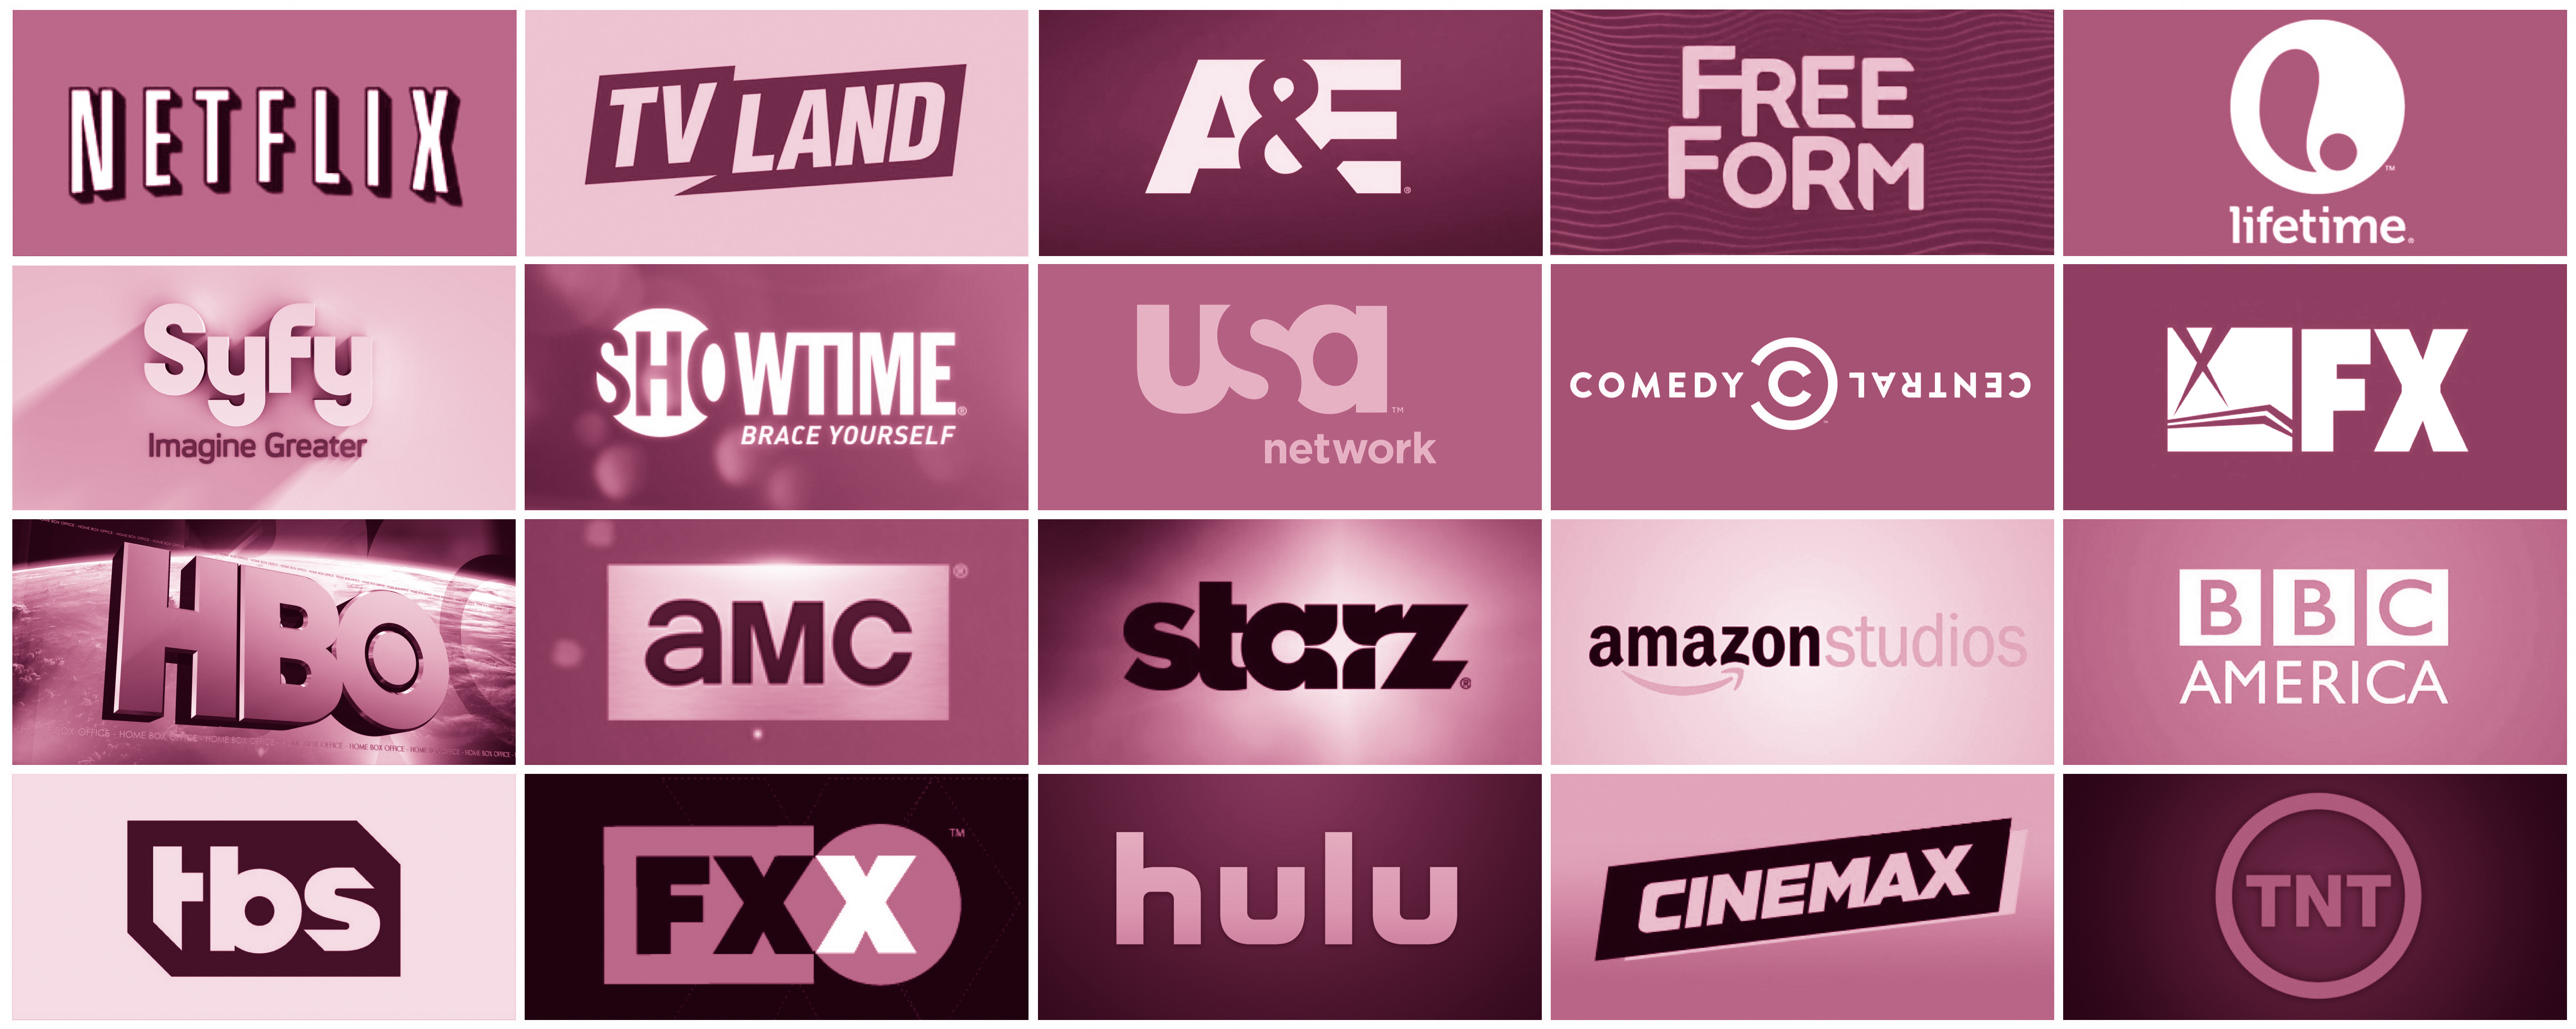 Cancelled or Renewed? Status of Cable & Streaming TV Shows